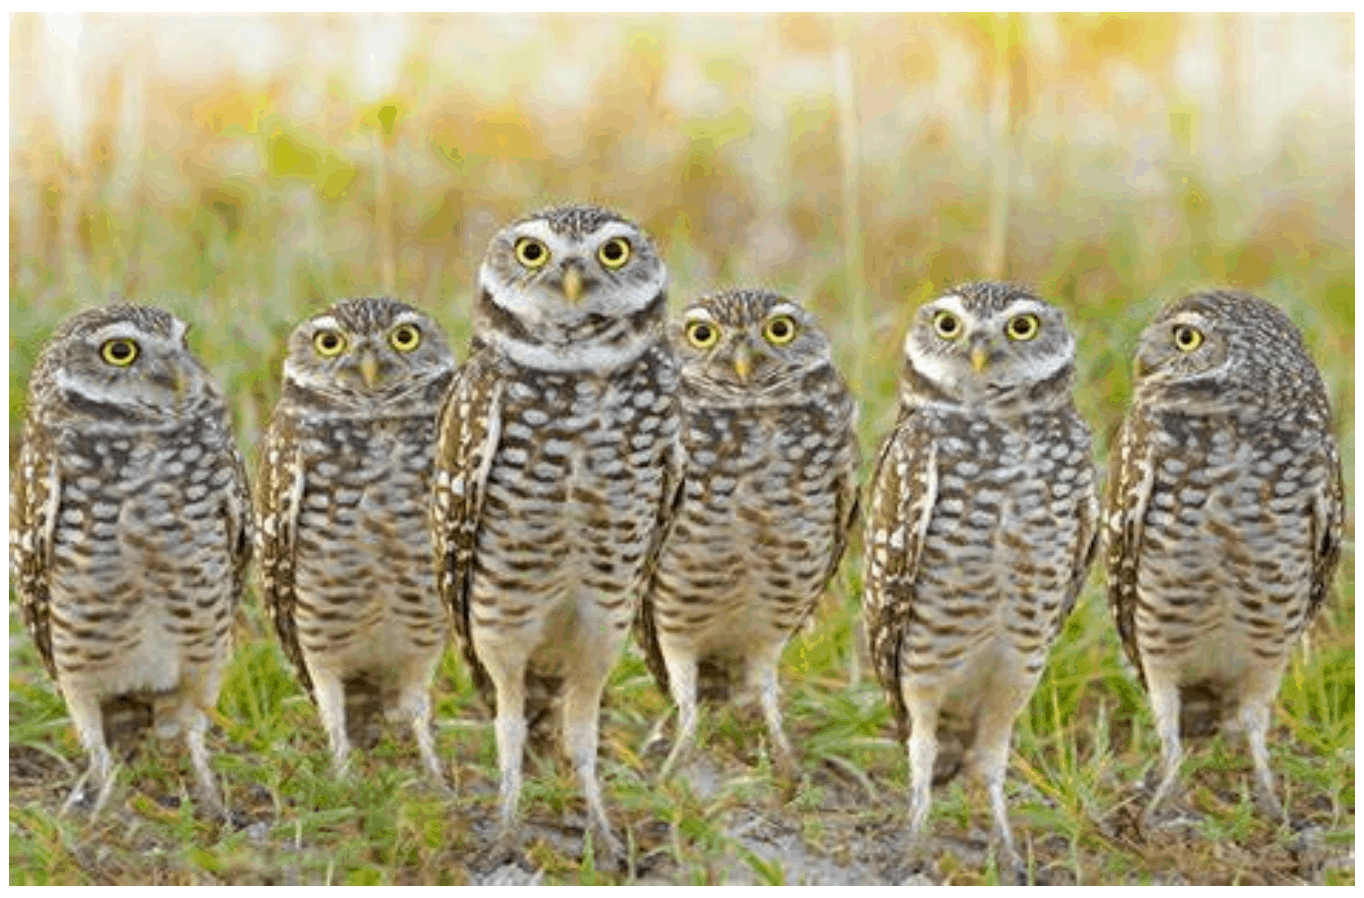 Burrowing owls in Sublette County, Wyoming, USA 5